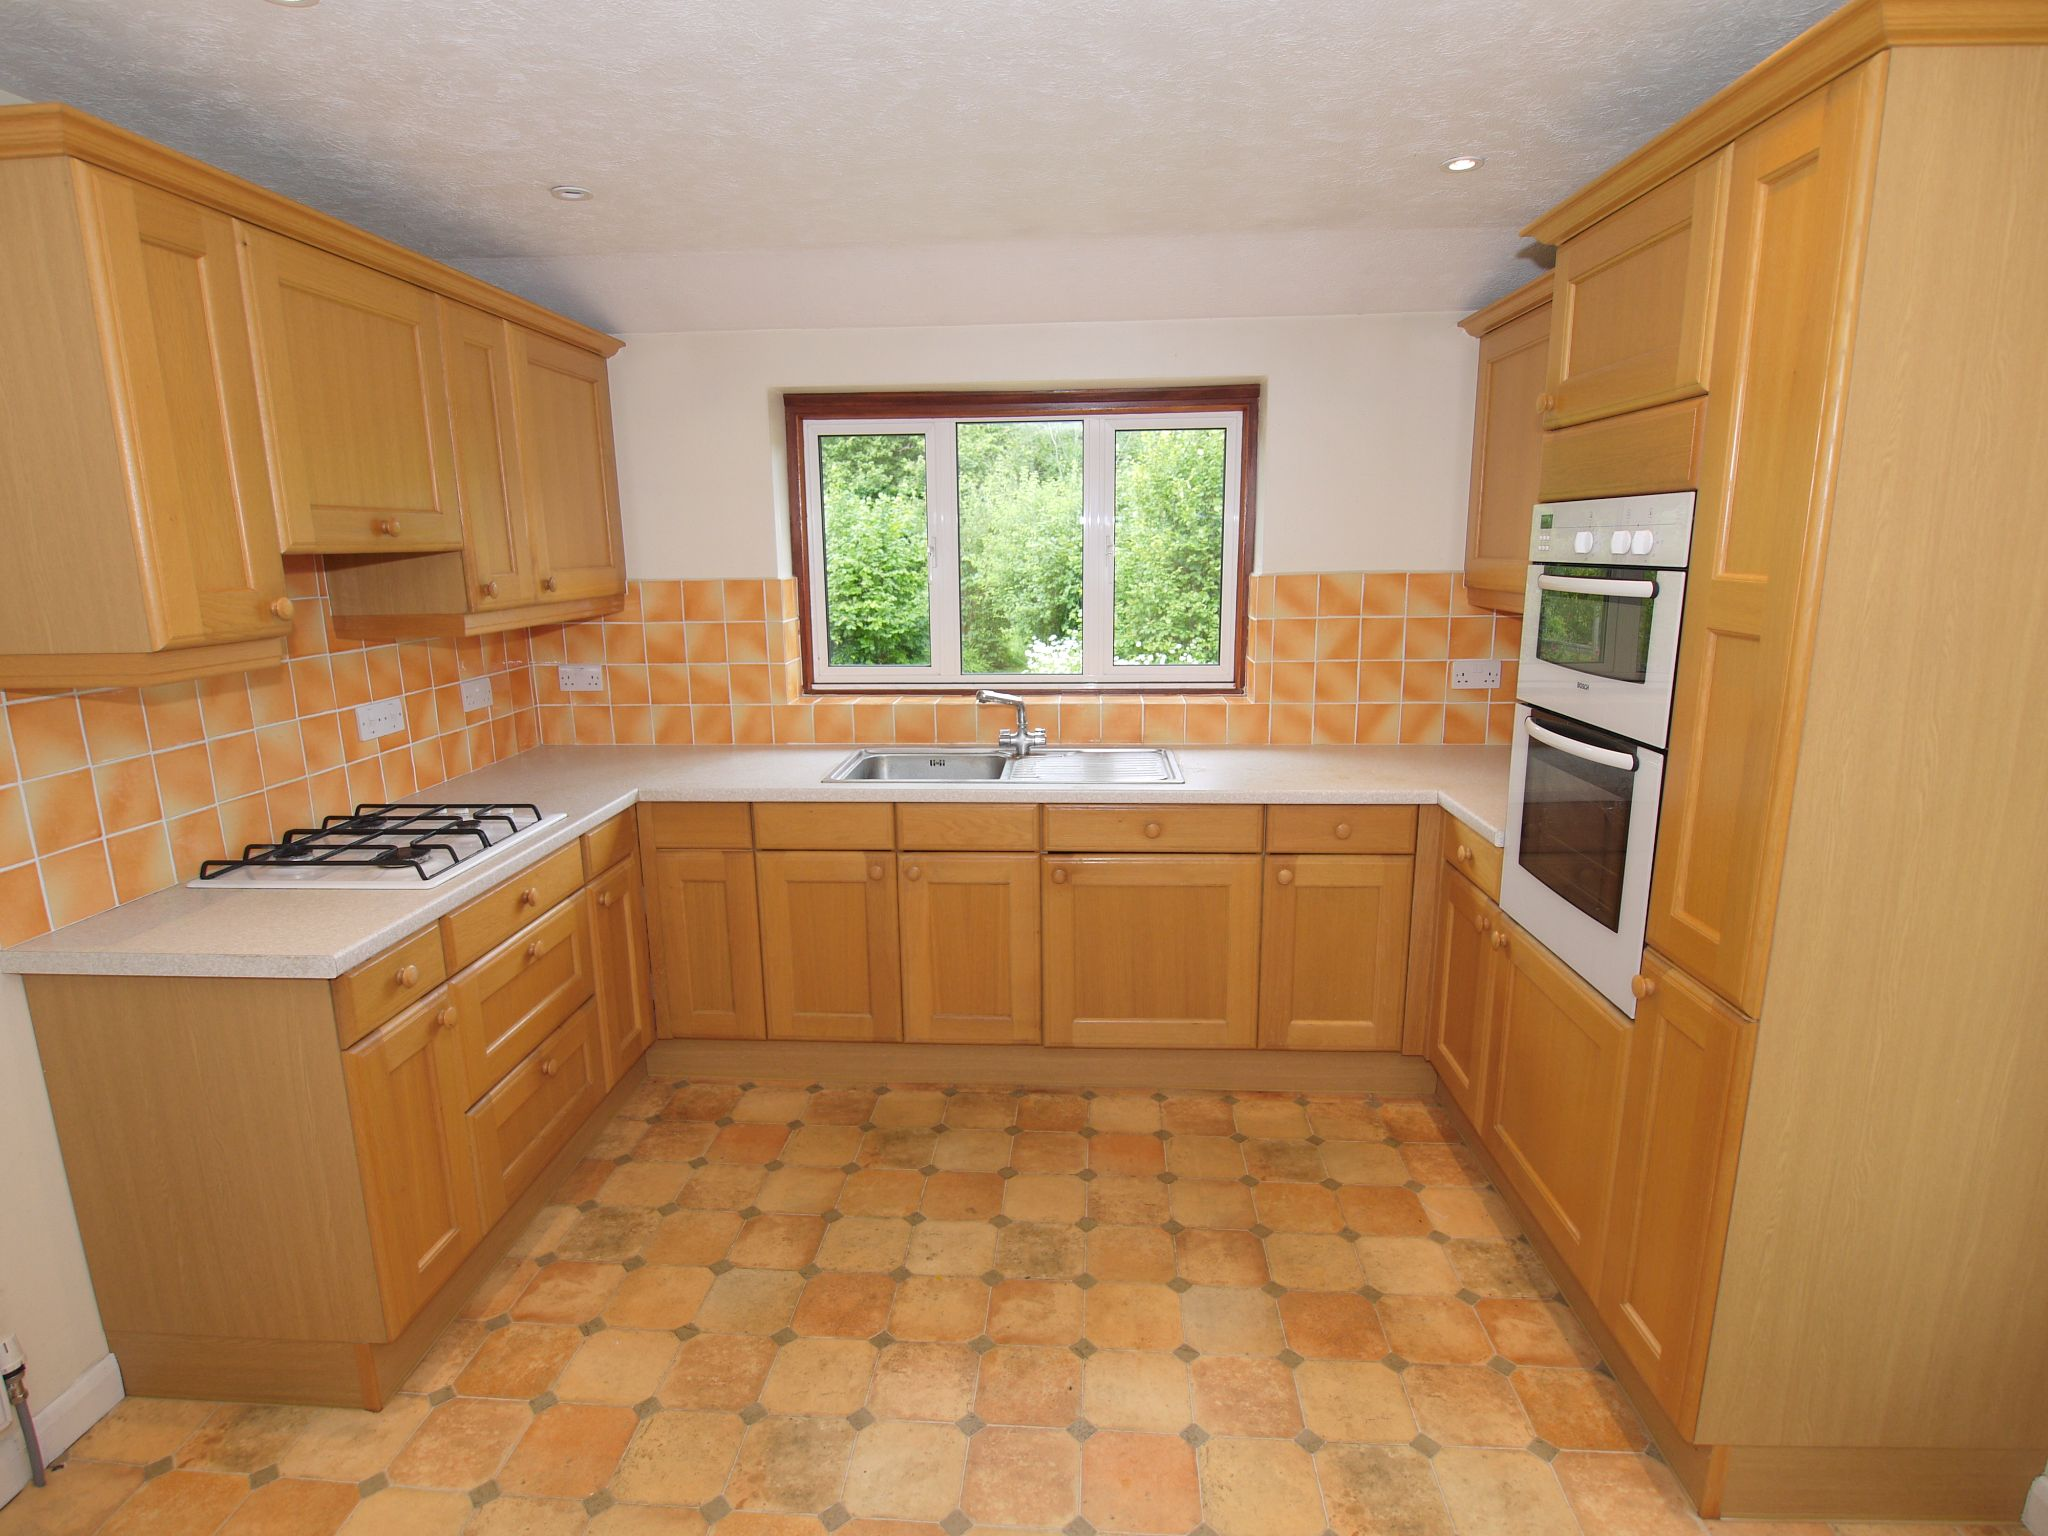 3 bedroom detached house Sale Agreed in Sevenoaks - Photograph 6